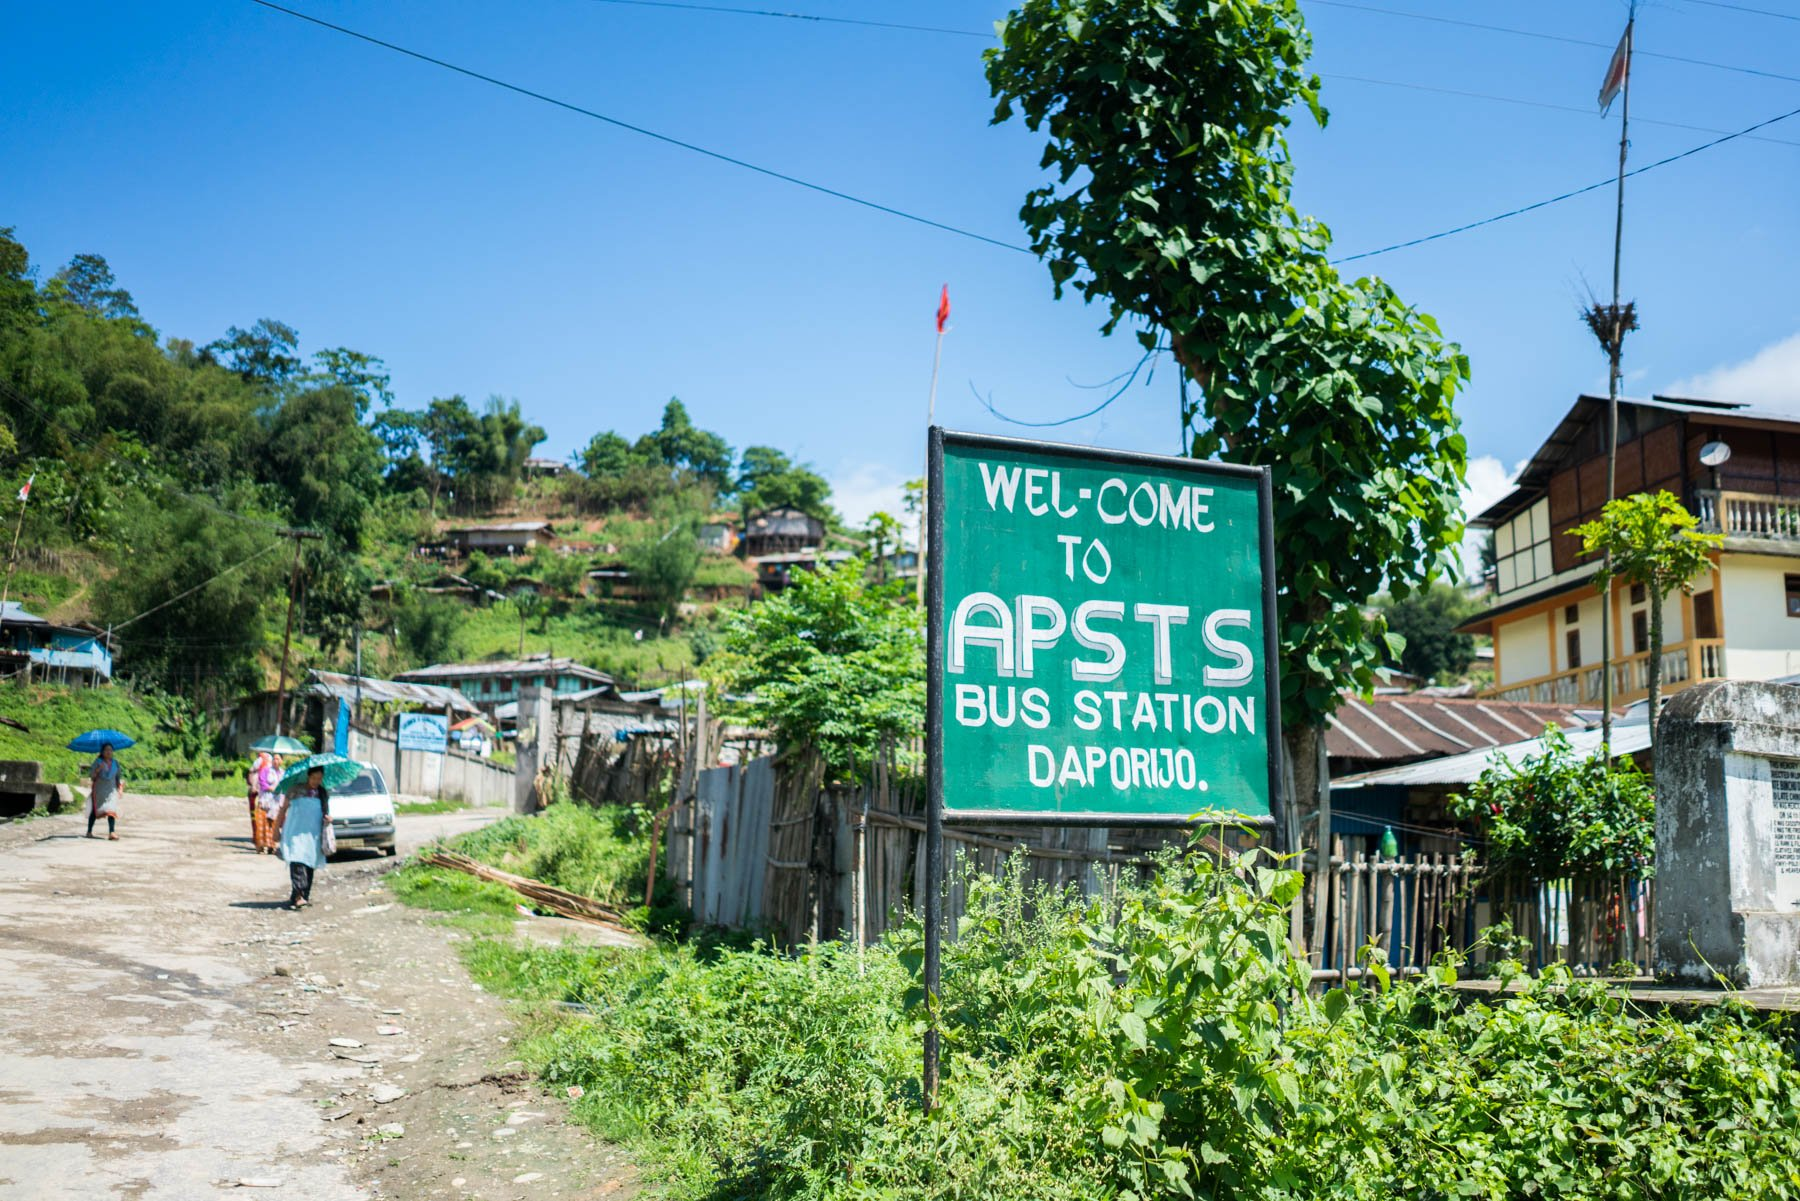 Backpacking in Arunachal Pradesh travel guide - APST bus stand in Daporijo - Lost With Purpose